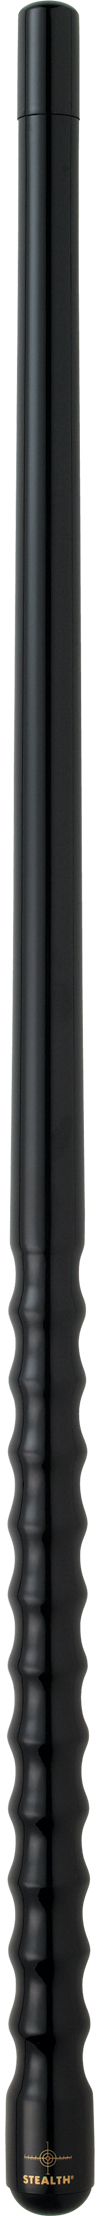 Stealth---LSP-1B---Black-Break-Cue